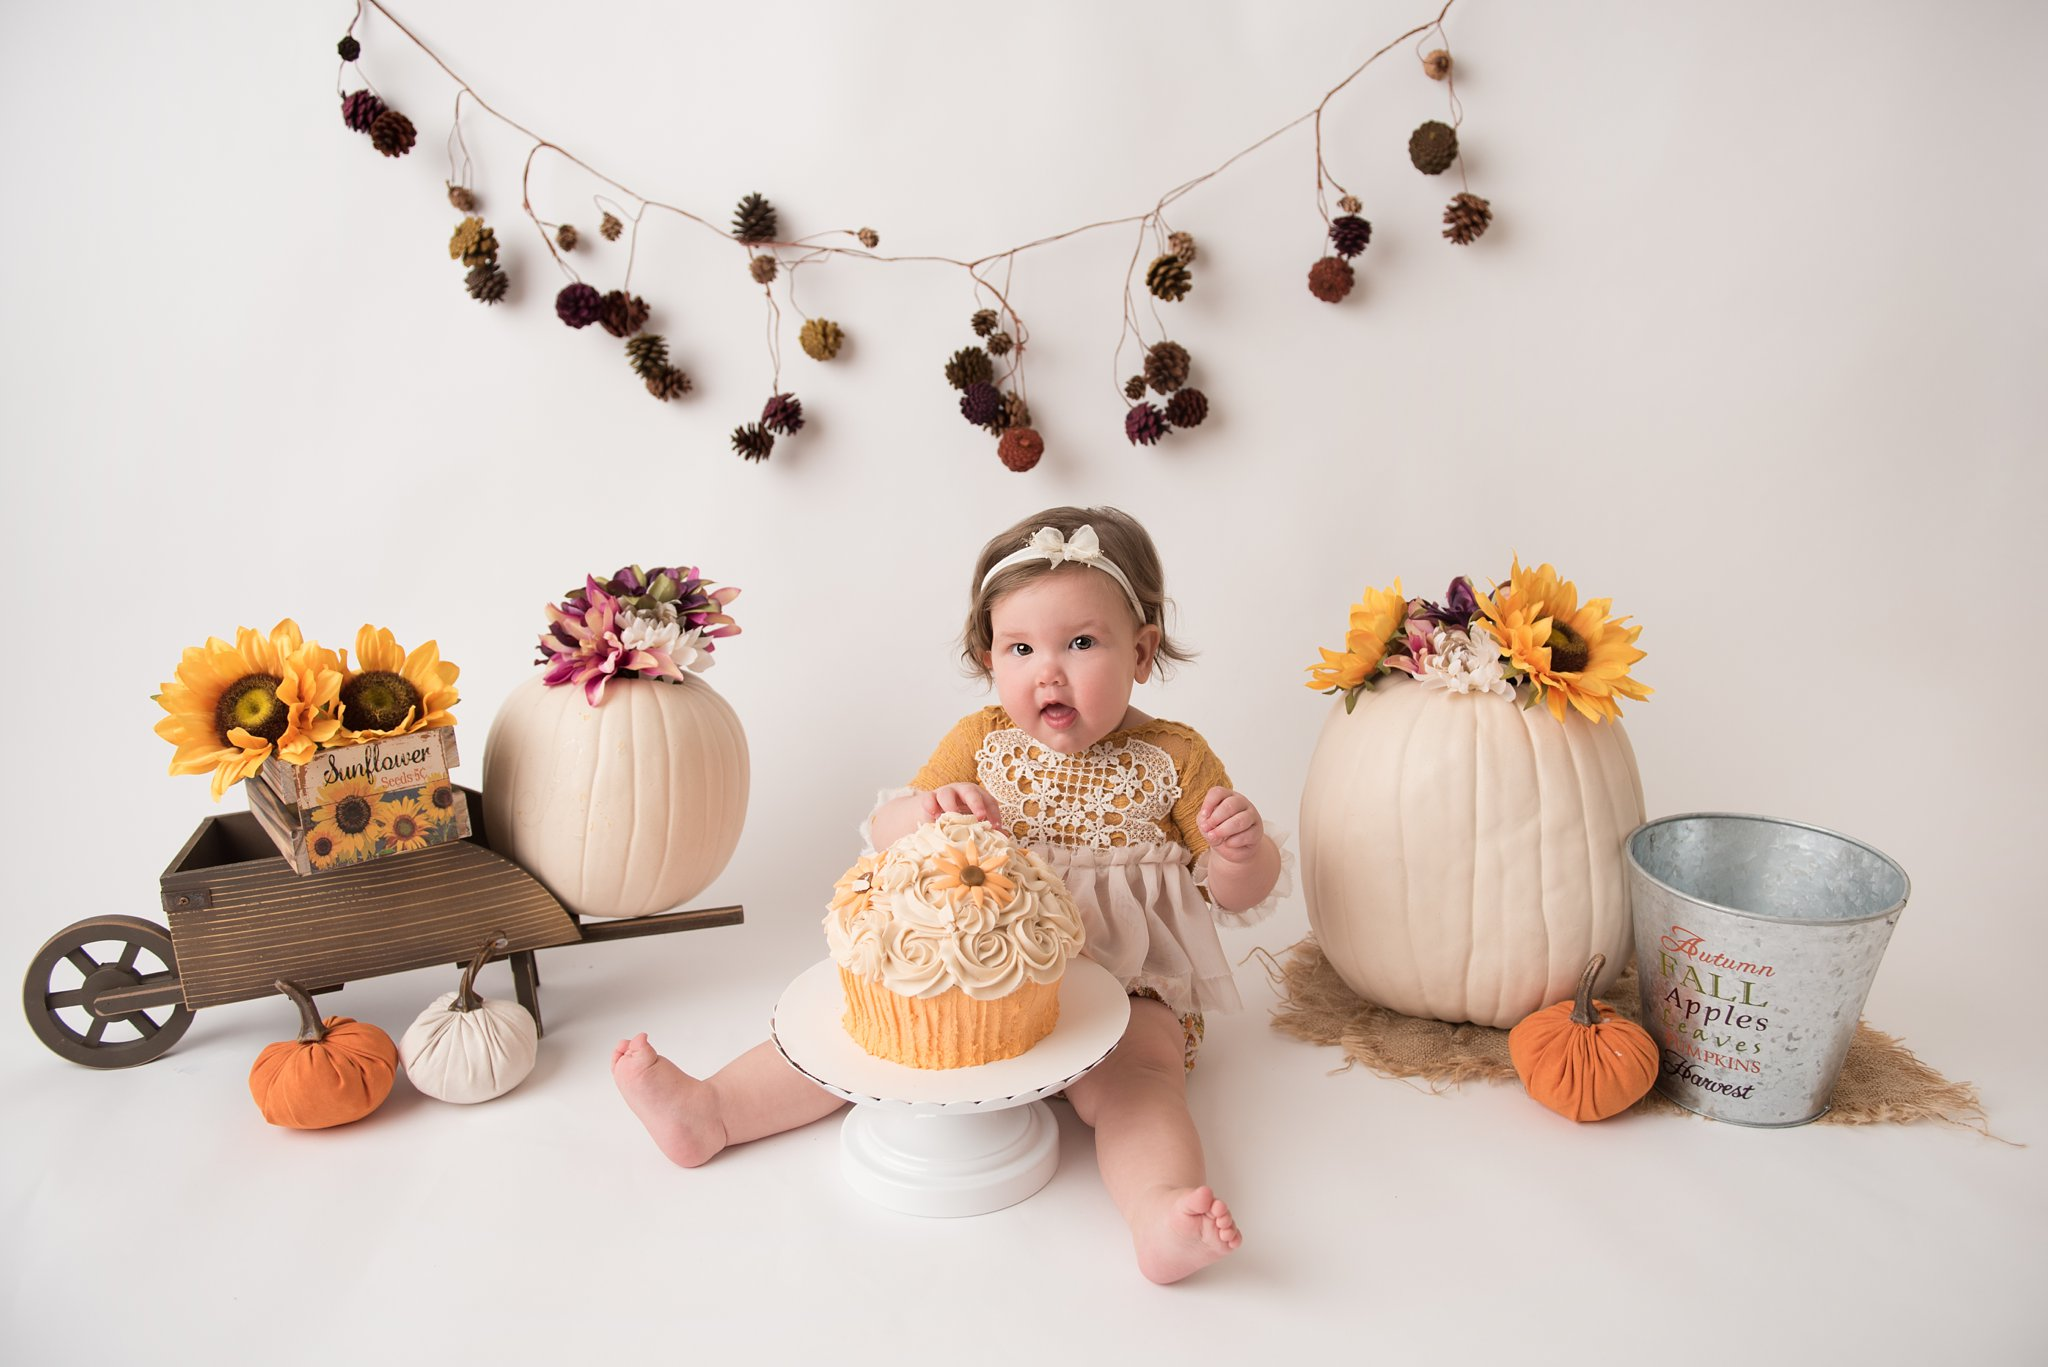 columbus ohio 1 year old celebrates first birthday with a fall and pumpkin themed cake smash with jacqueline marie photography